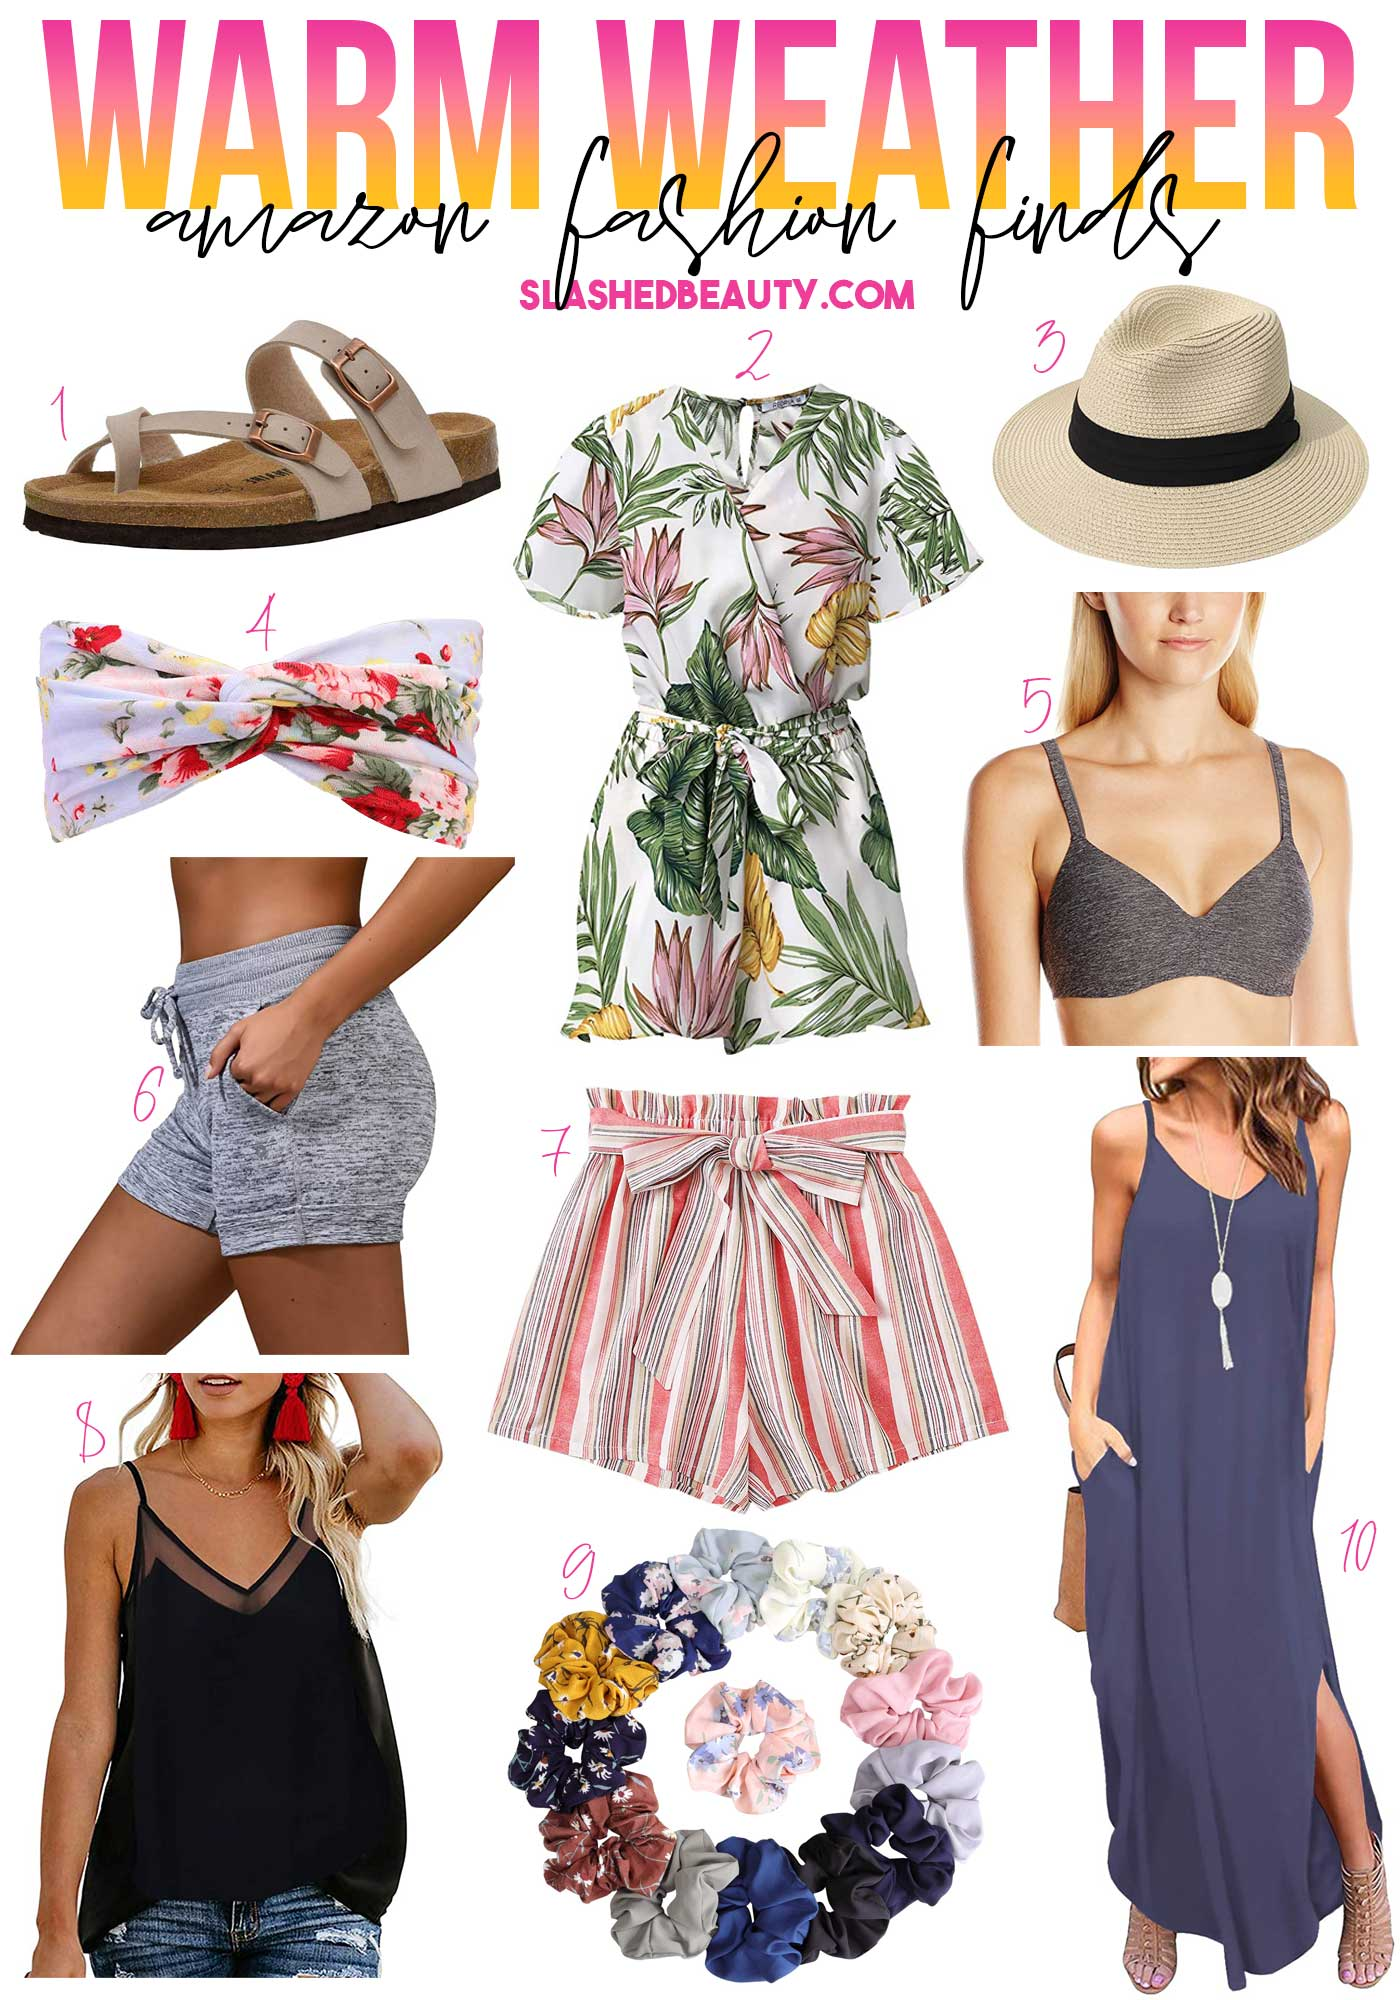 10 Amazon Summer Fashion Finds Under $30 | Easy Summer Outfits | Slashed Beauty